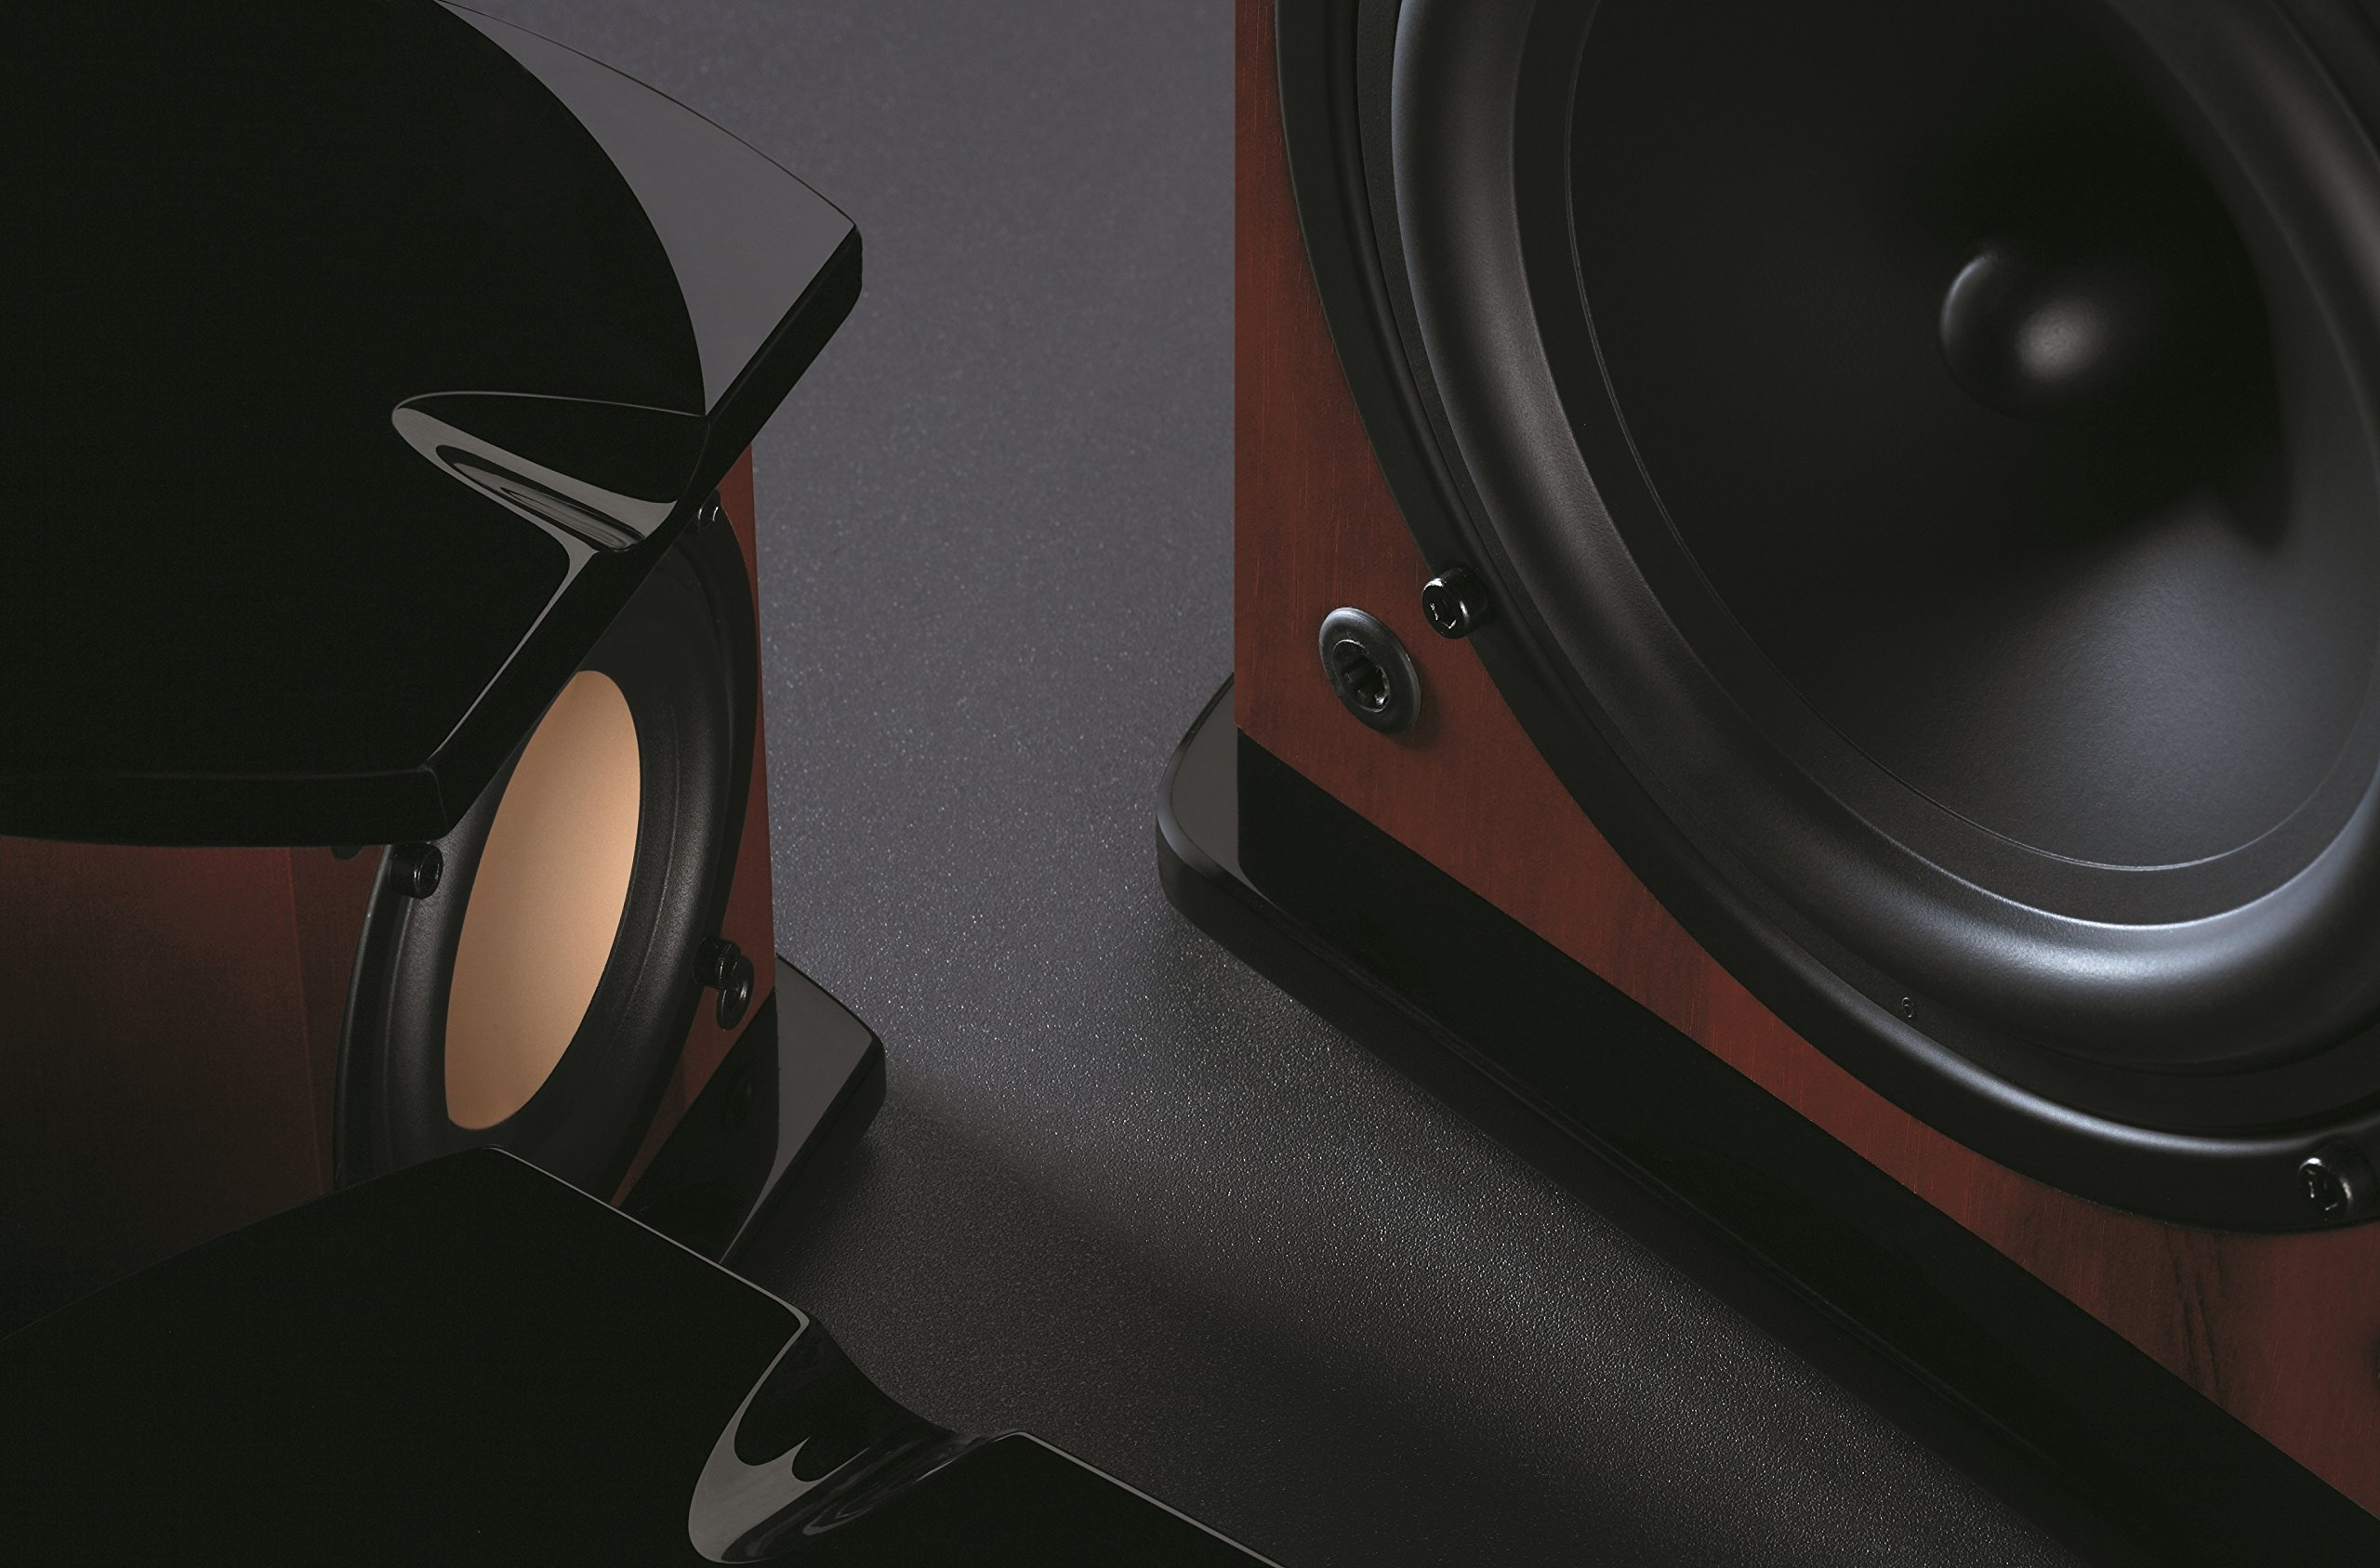 Swan Speakers - M20W - Beautiful Powered 2.1 Living Room Laptop Speakers -  6'' Subwoofer - Rosewood with Pink Gold Aluminium Drivers and Piano Finish - 50W RMS Internal Amplifier by Swan Speakers (Image #6)